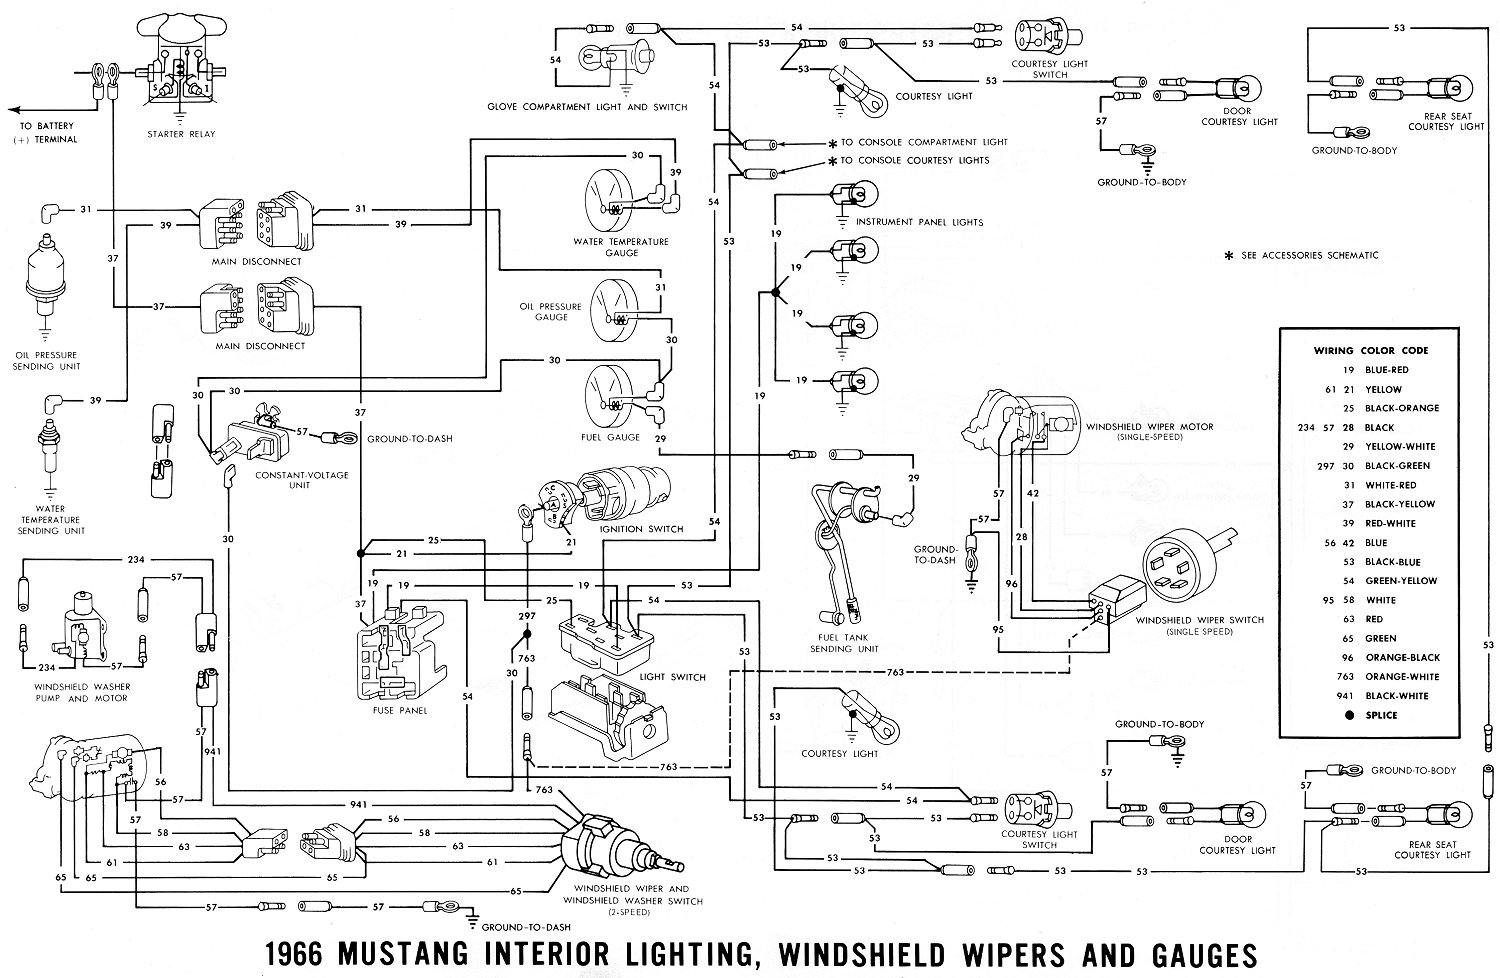 66inter1 1966 mustang wiring diagrams average joe restoration hot water pressure washer wiring diagram at bayanpartner.co